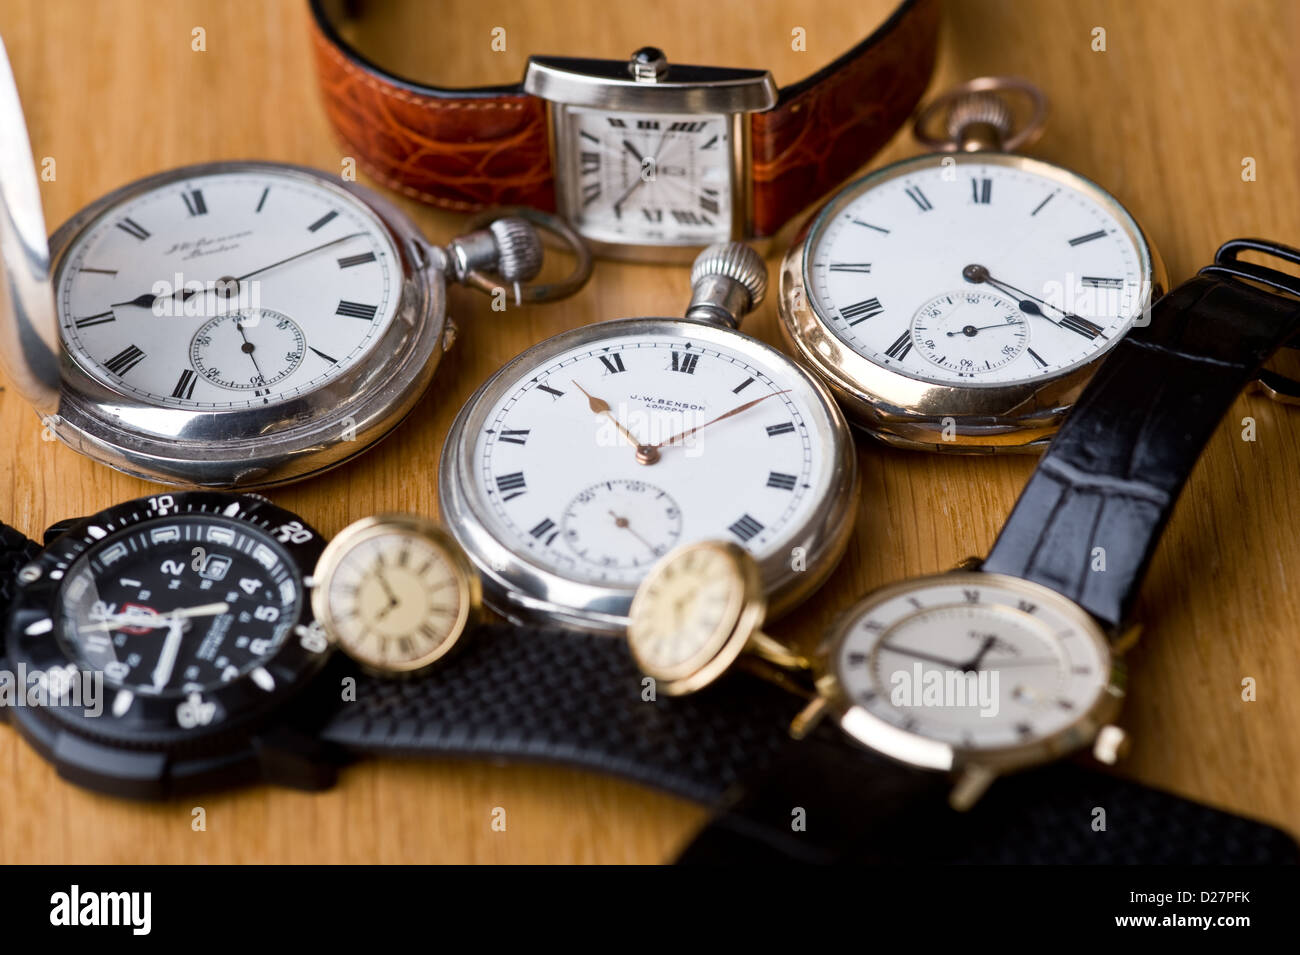 Group of pocket watches and wristwatches, on an oak table top. - Stock Image